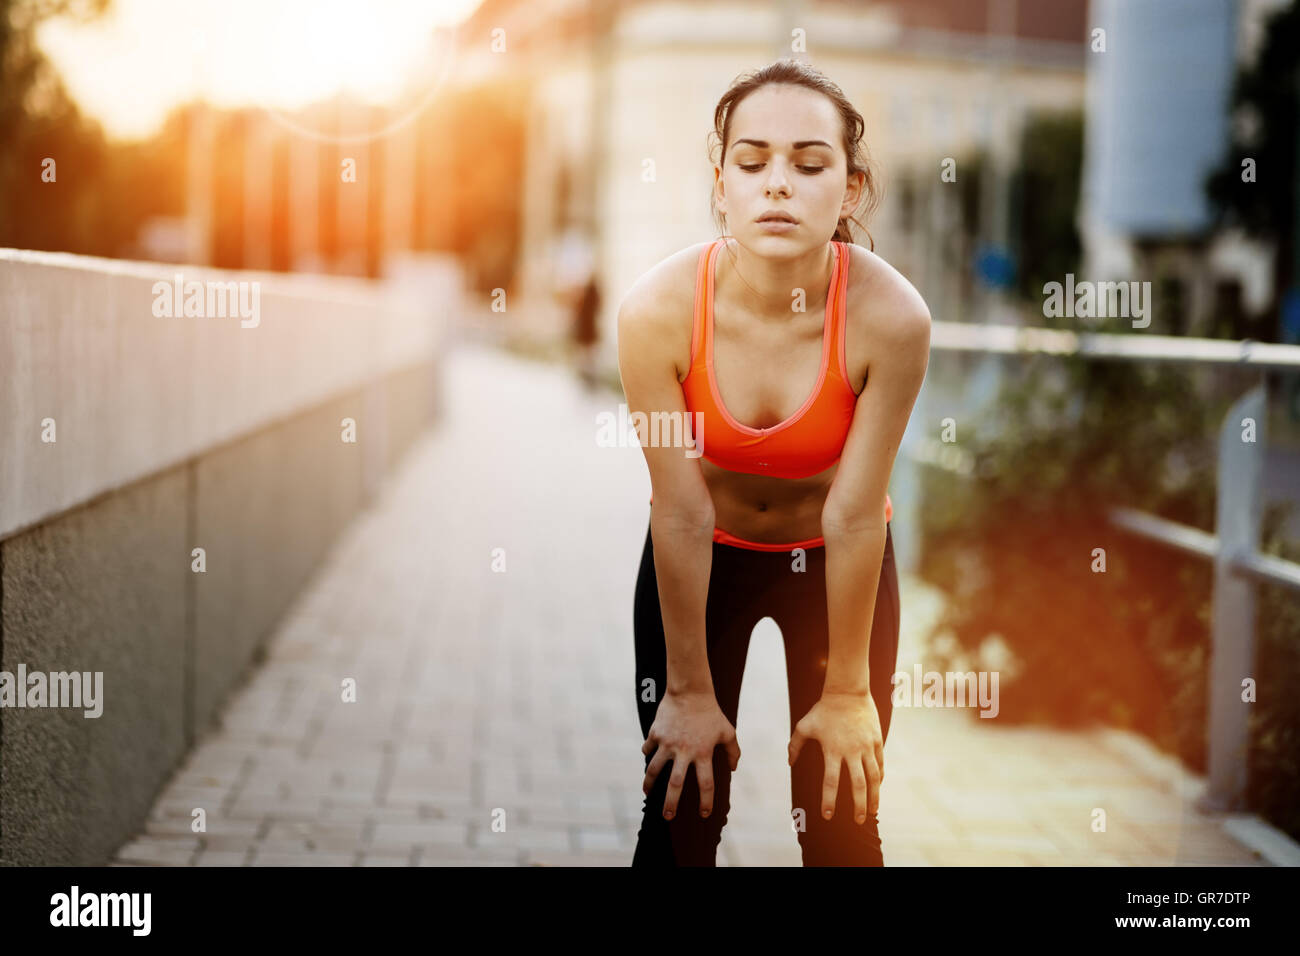 Tired female jogger resting after finishing run - Stock Image